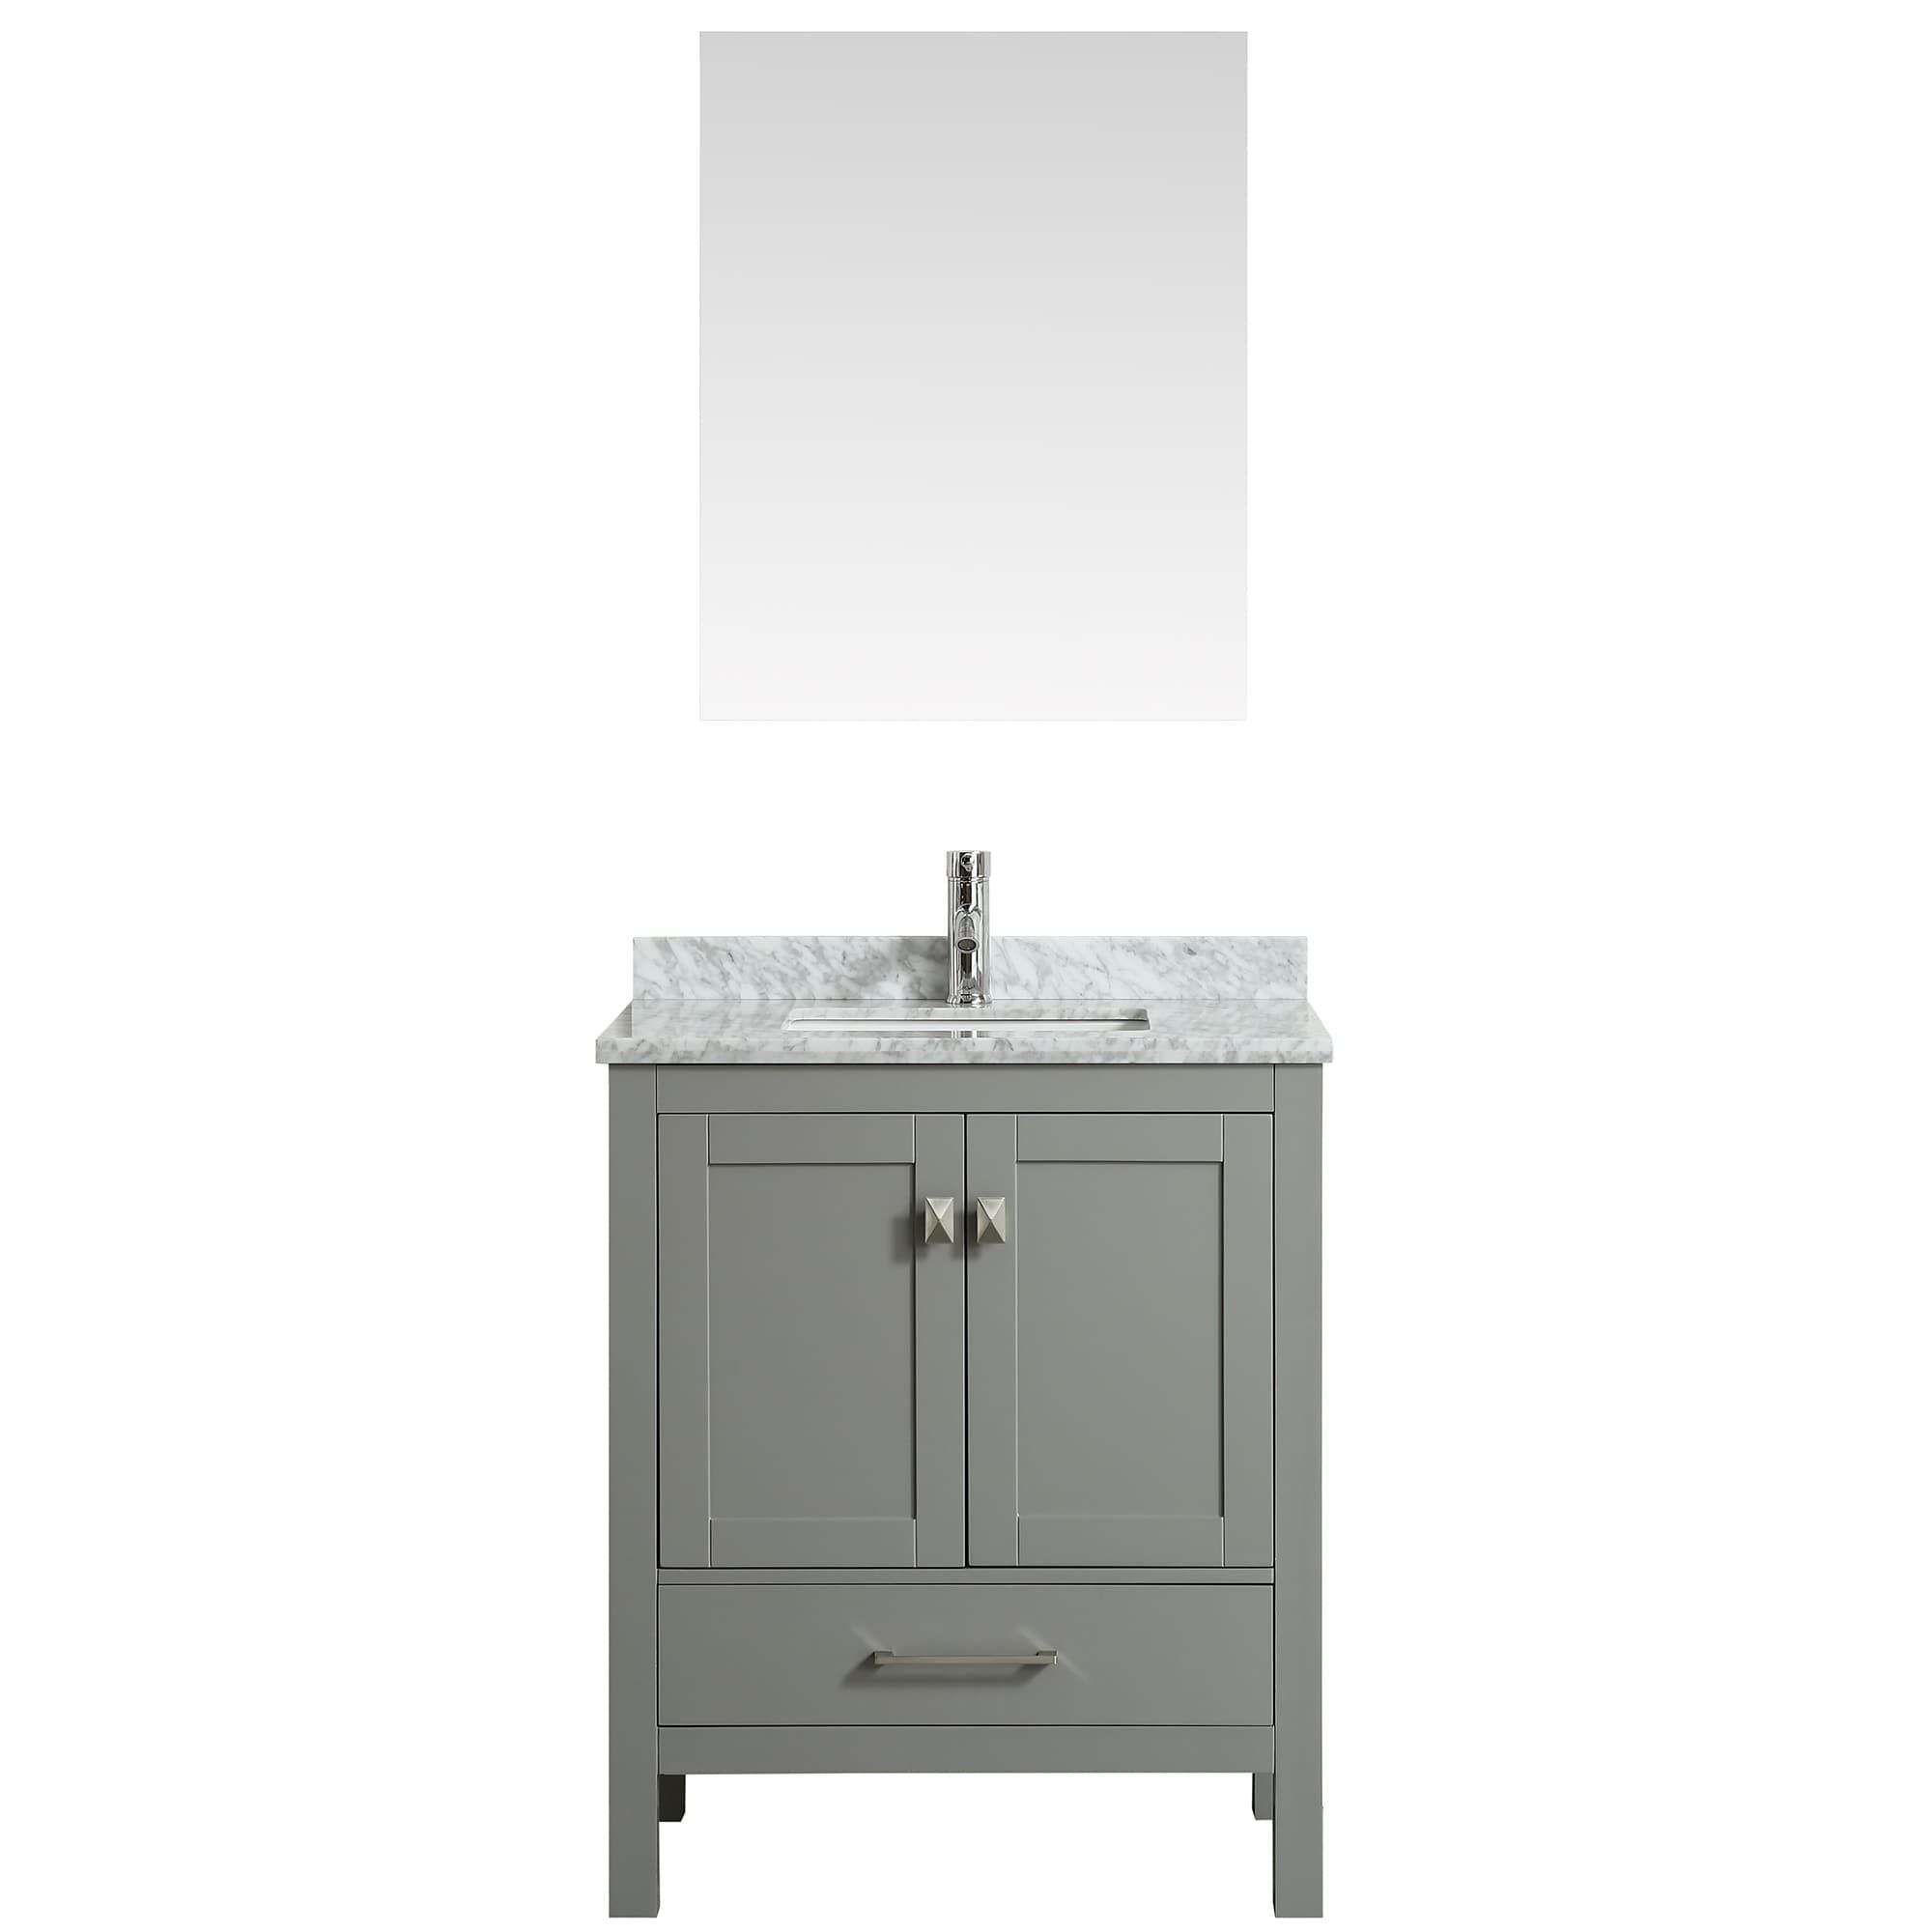 pin for vanity venica sink undermount teak wash bathroom gray grey